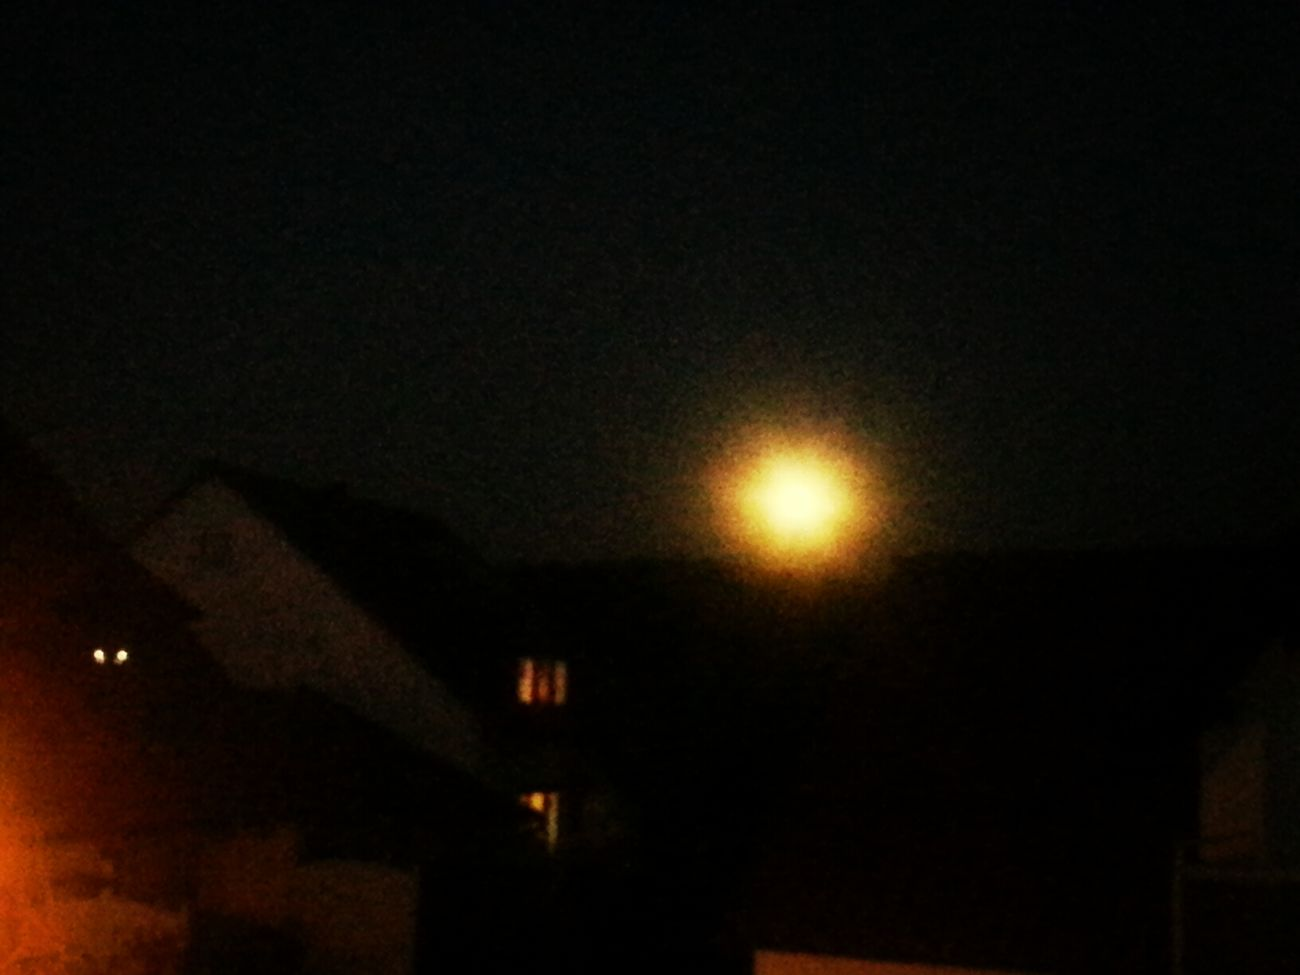 not a clear picture...but a bright full yellow moon tonight:)